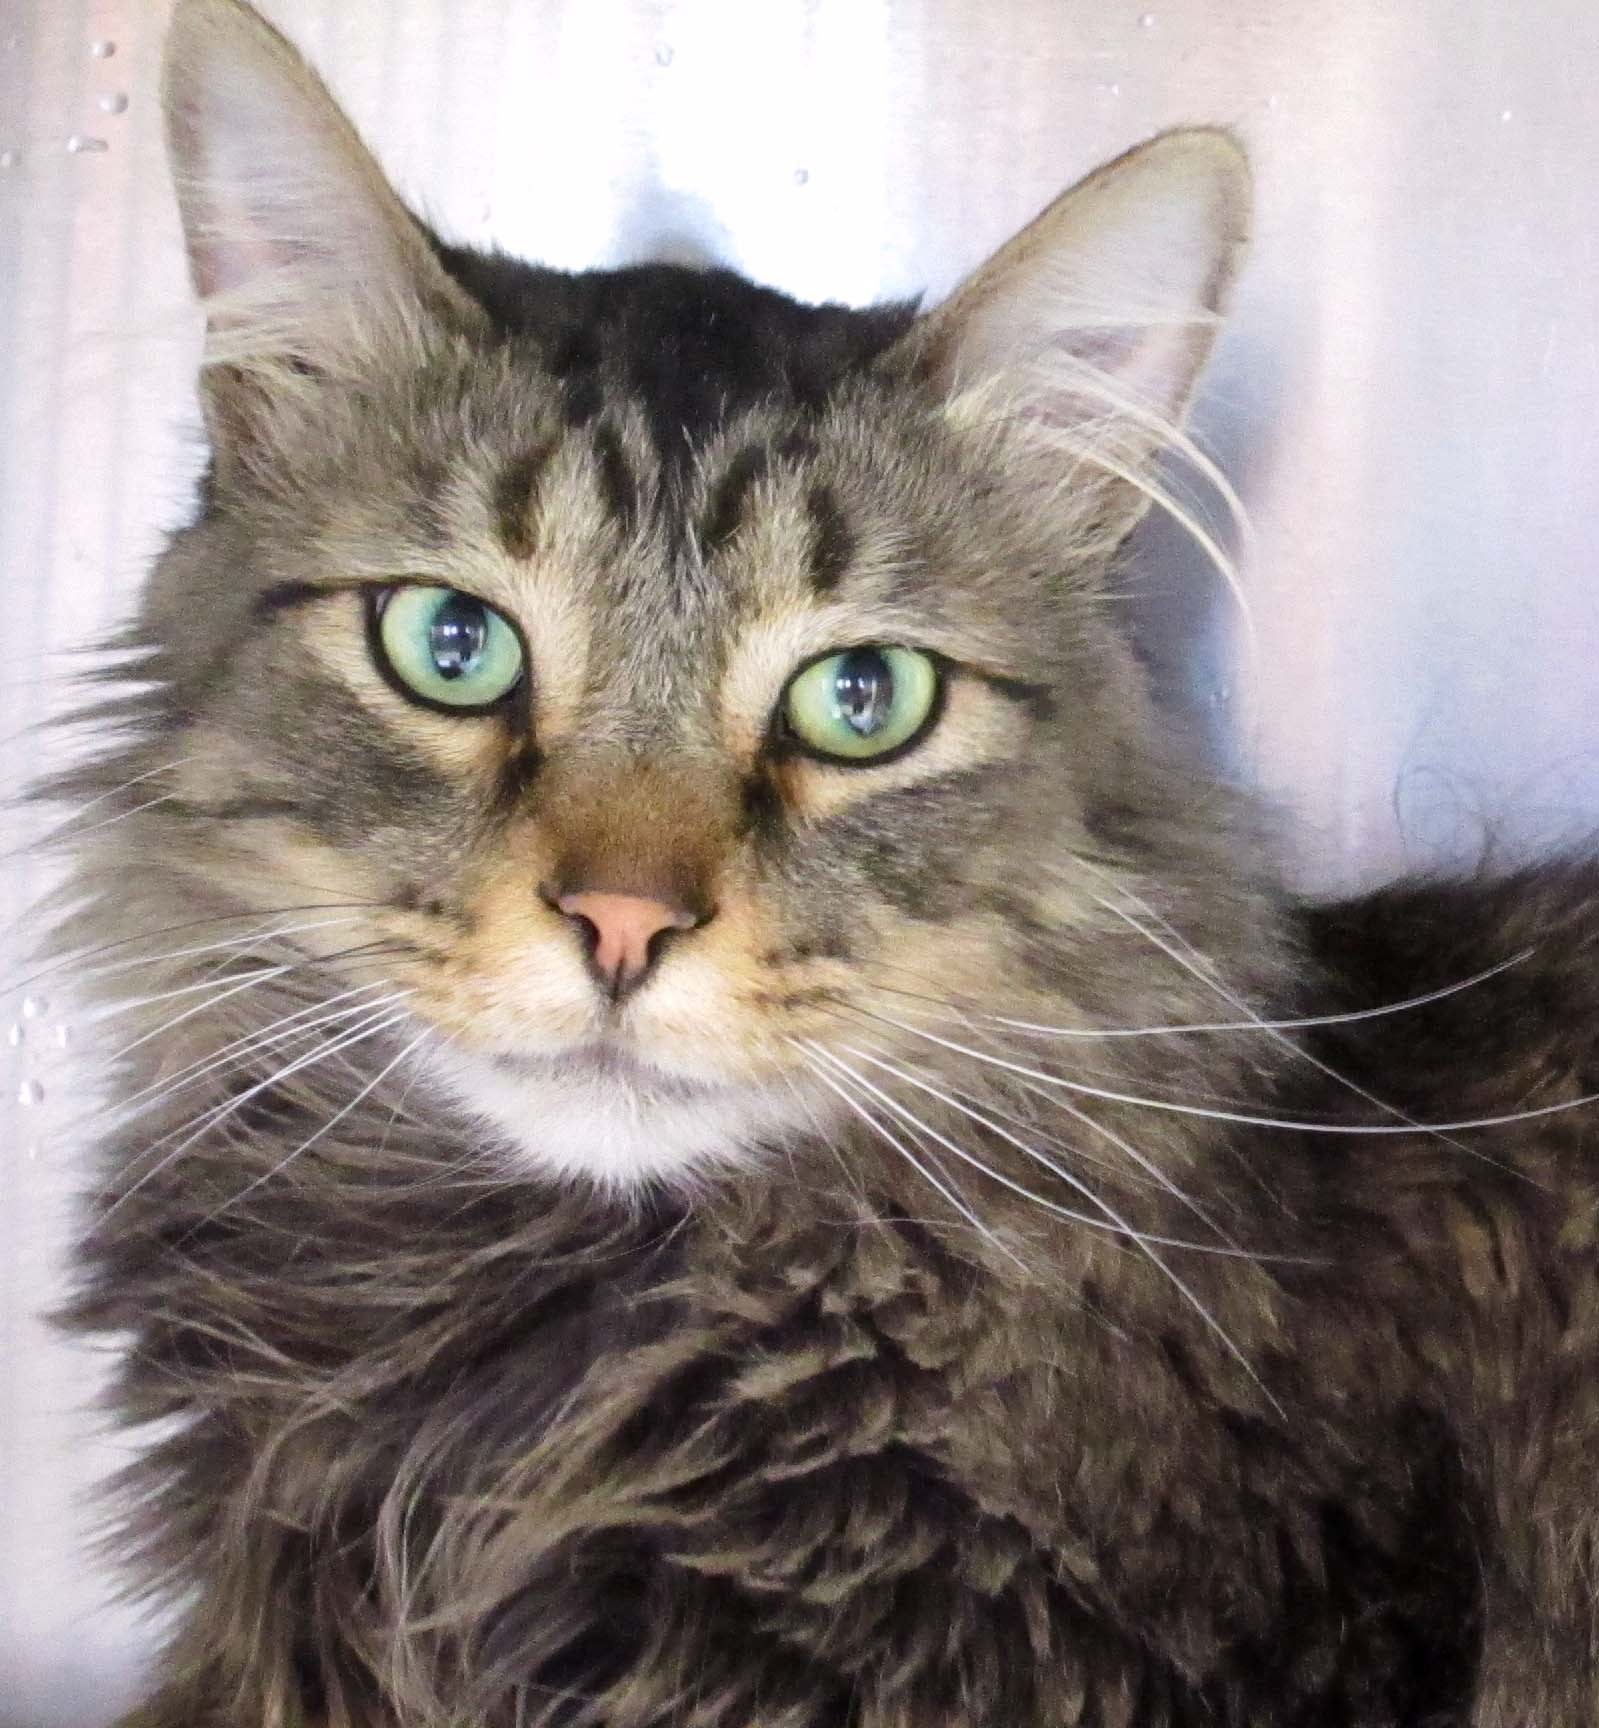 Al is a beautiful year and a half oldDomestic Medium Hair. He is a very nice boy that would love for you to come and visit with him and bring him to his forever home!